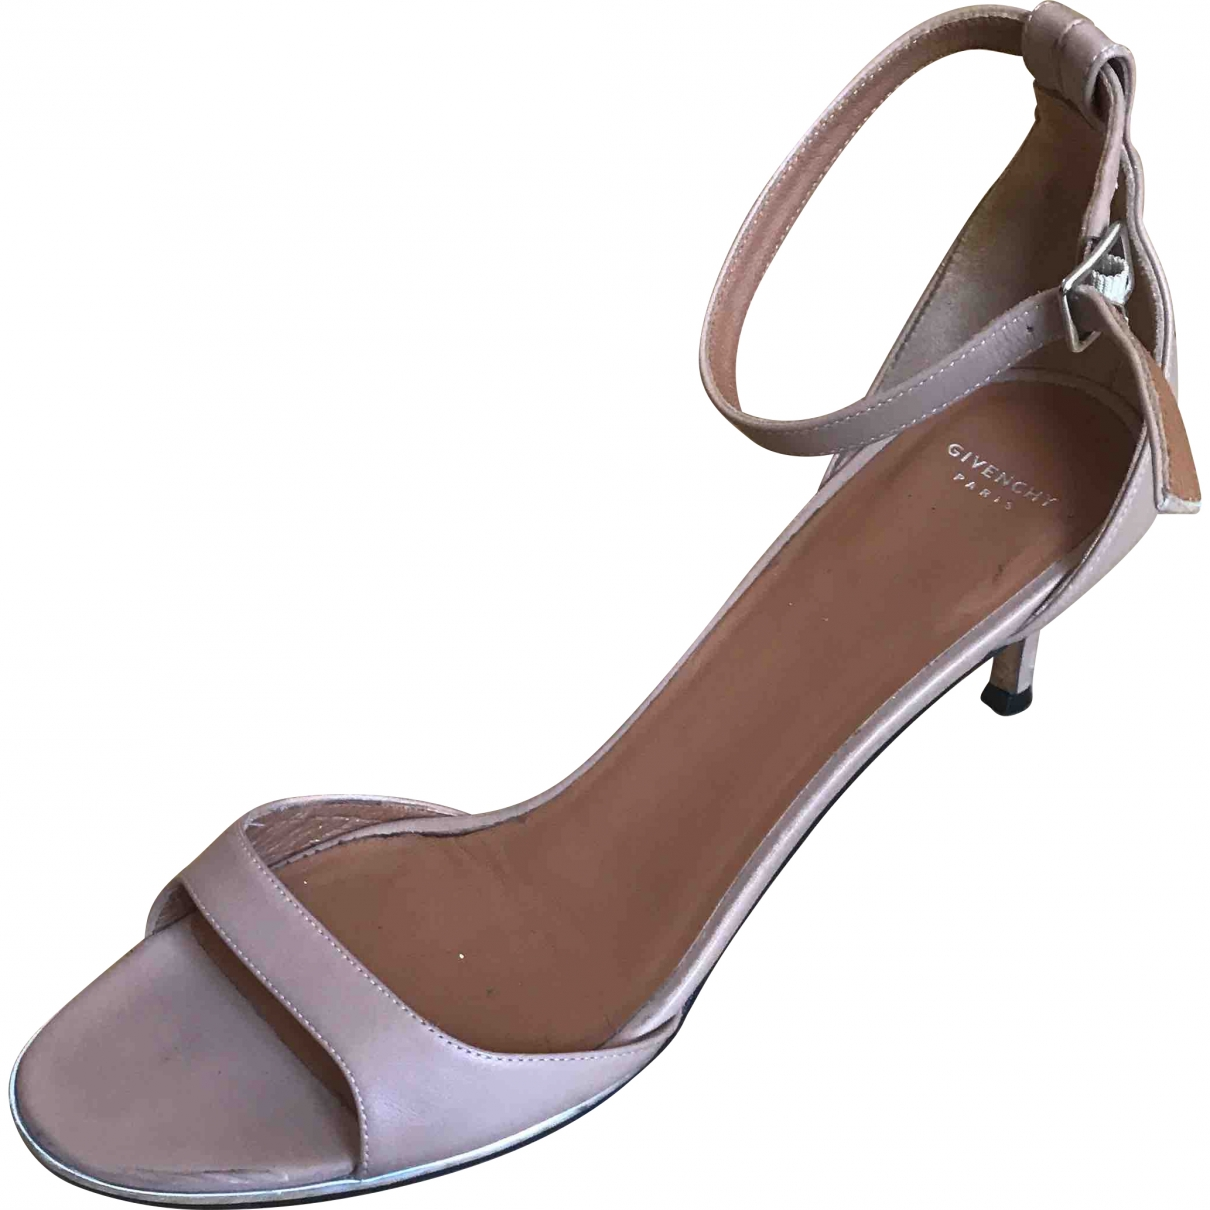 Givenchy \N Beige Leather Sandals for Women 40 EU